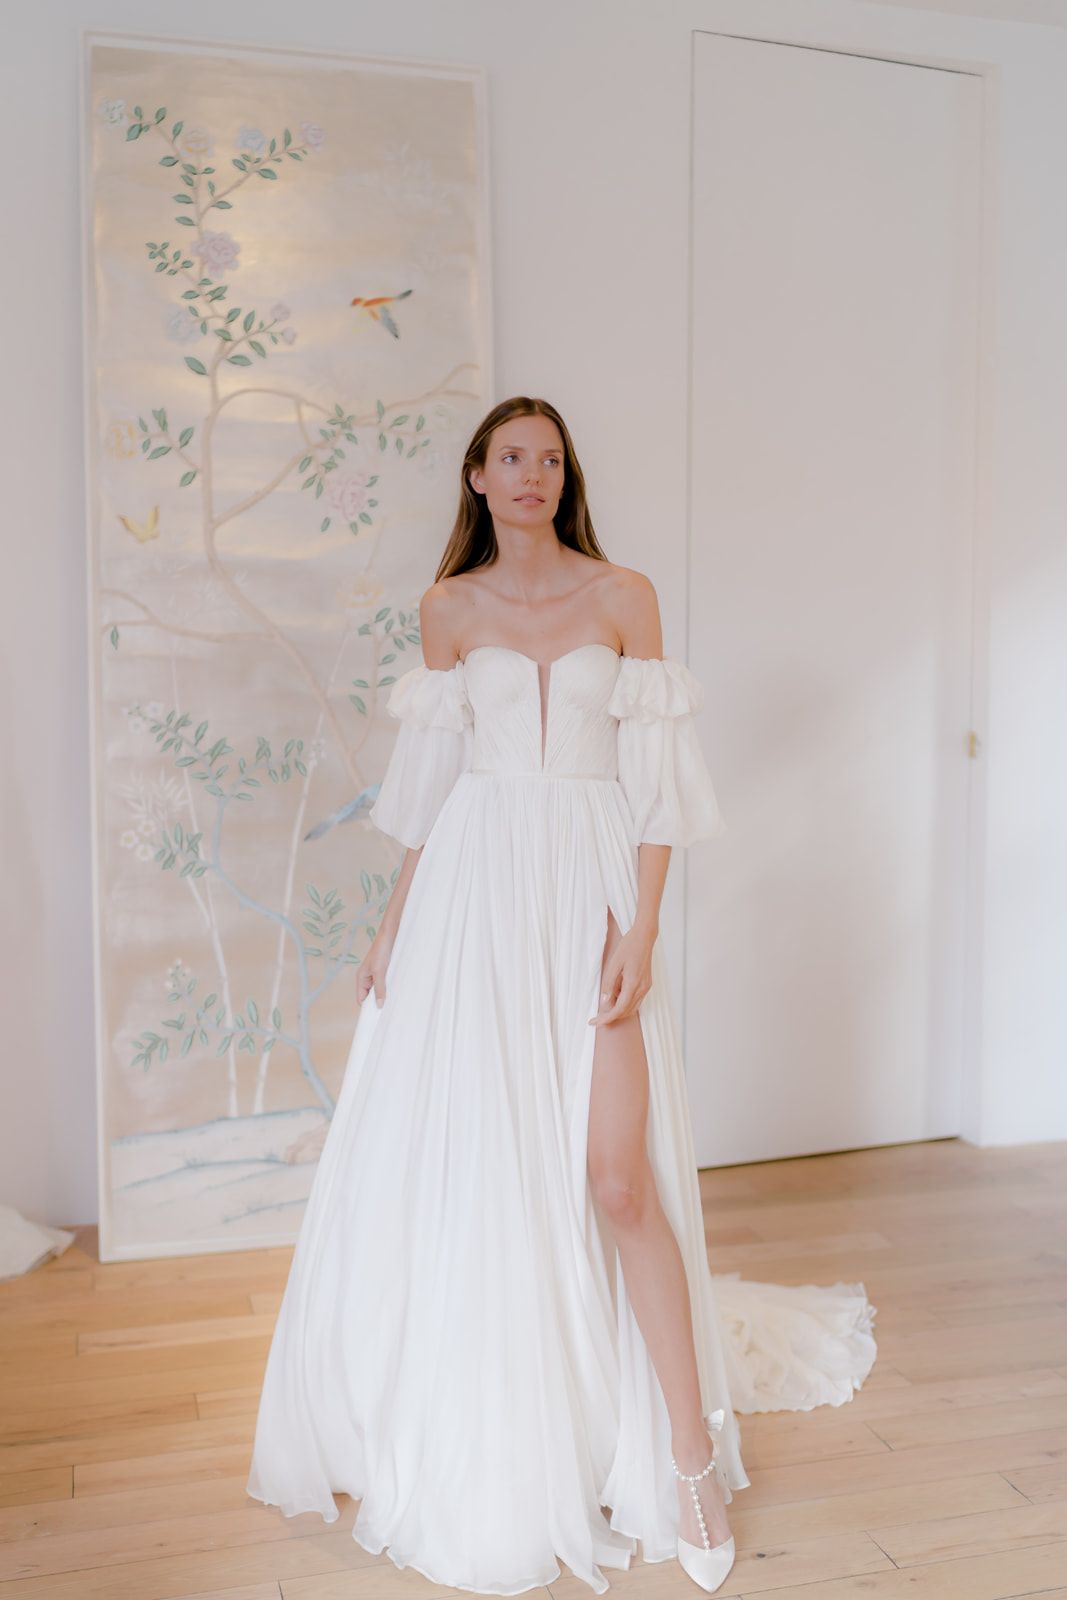 Modern Minimalist Gowns From Our Fw2020 Collection In 2020 Modern Wedding Dress Minimalist Wedding Dresses Modern Wedding Dresses Minimalist